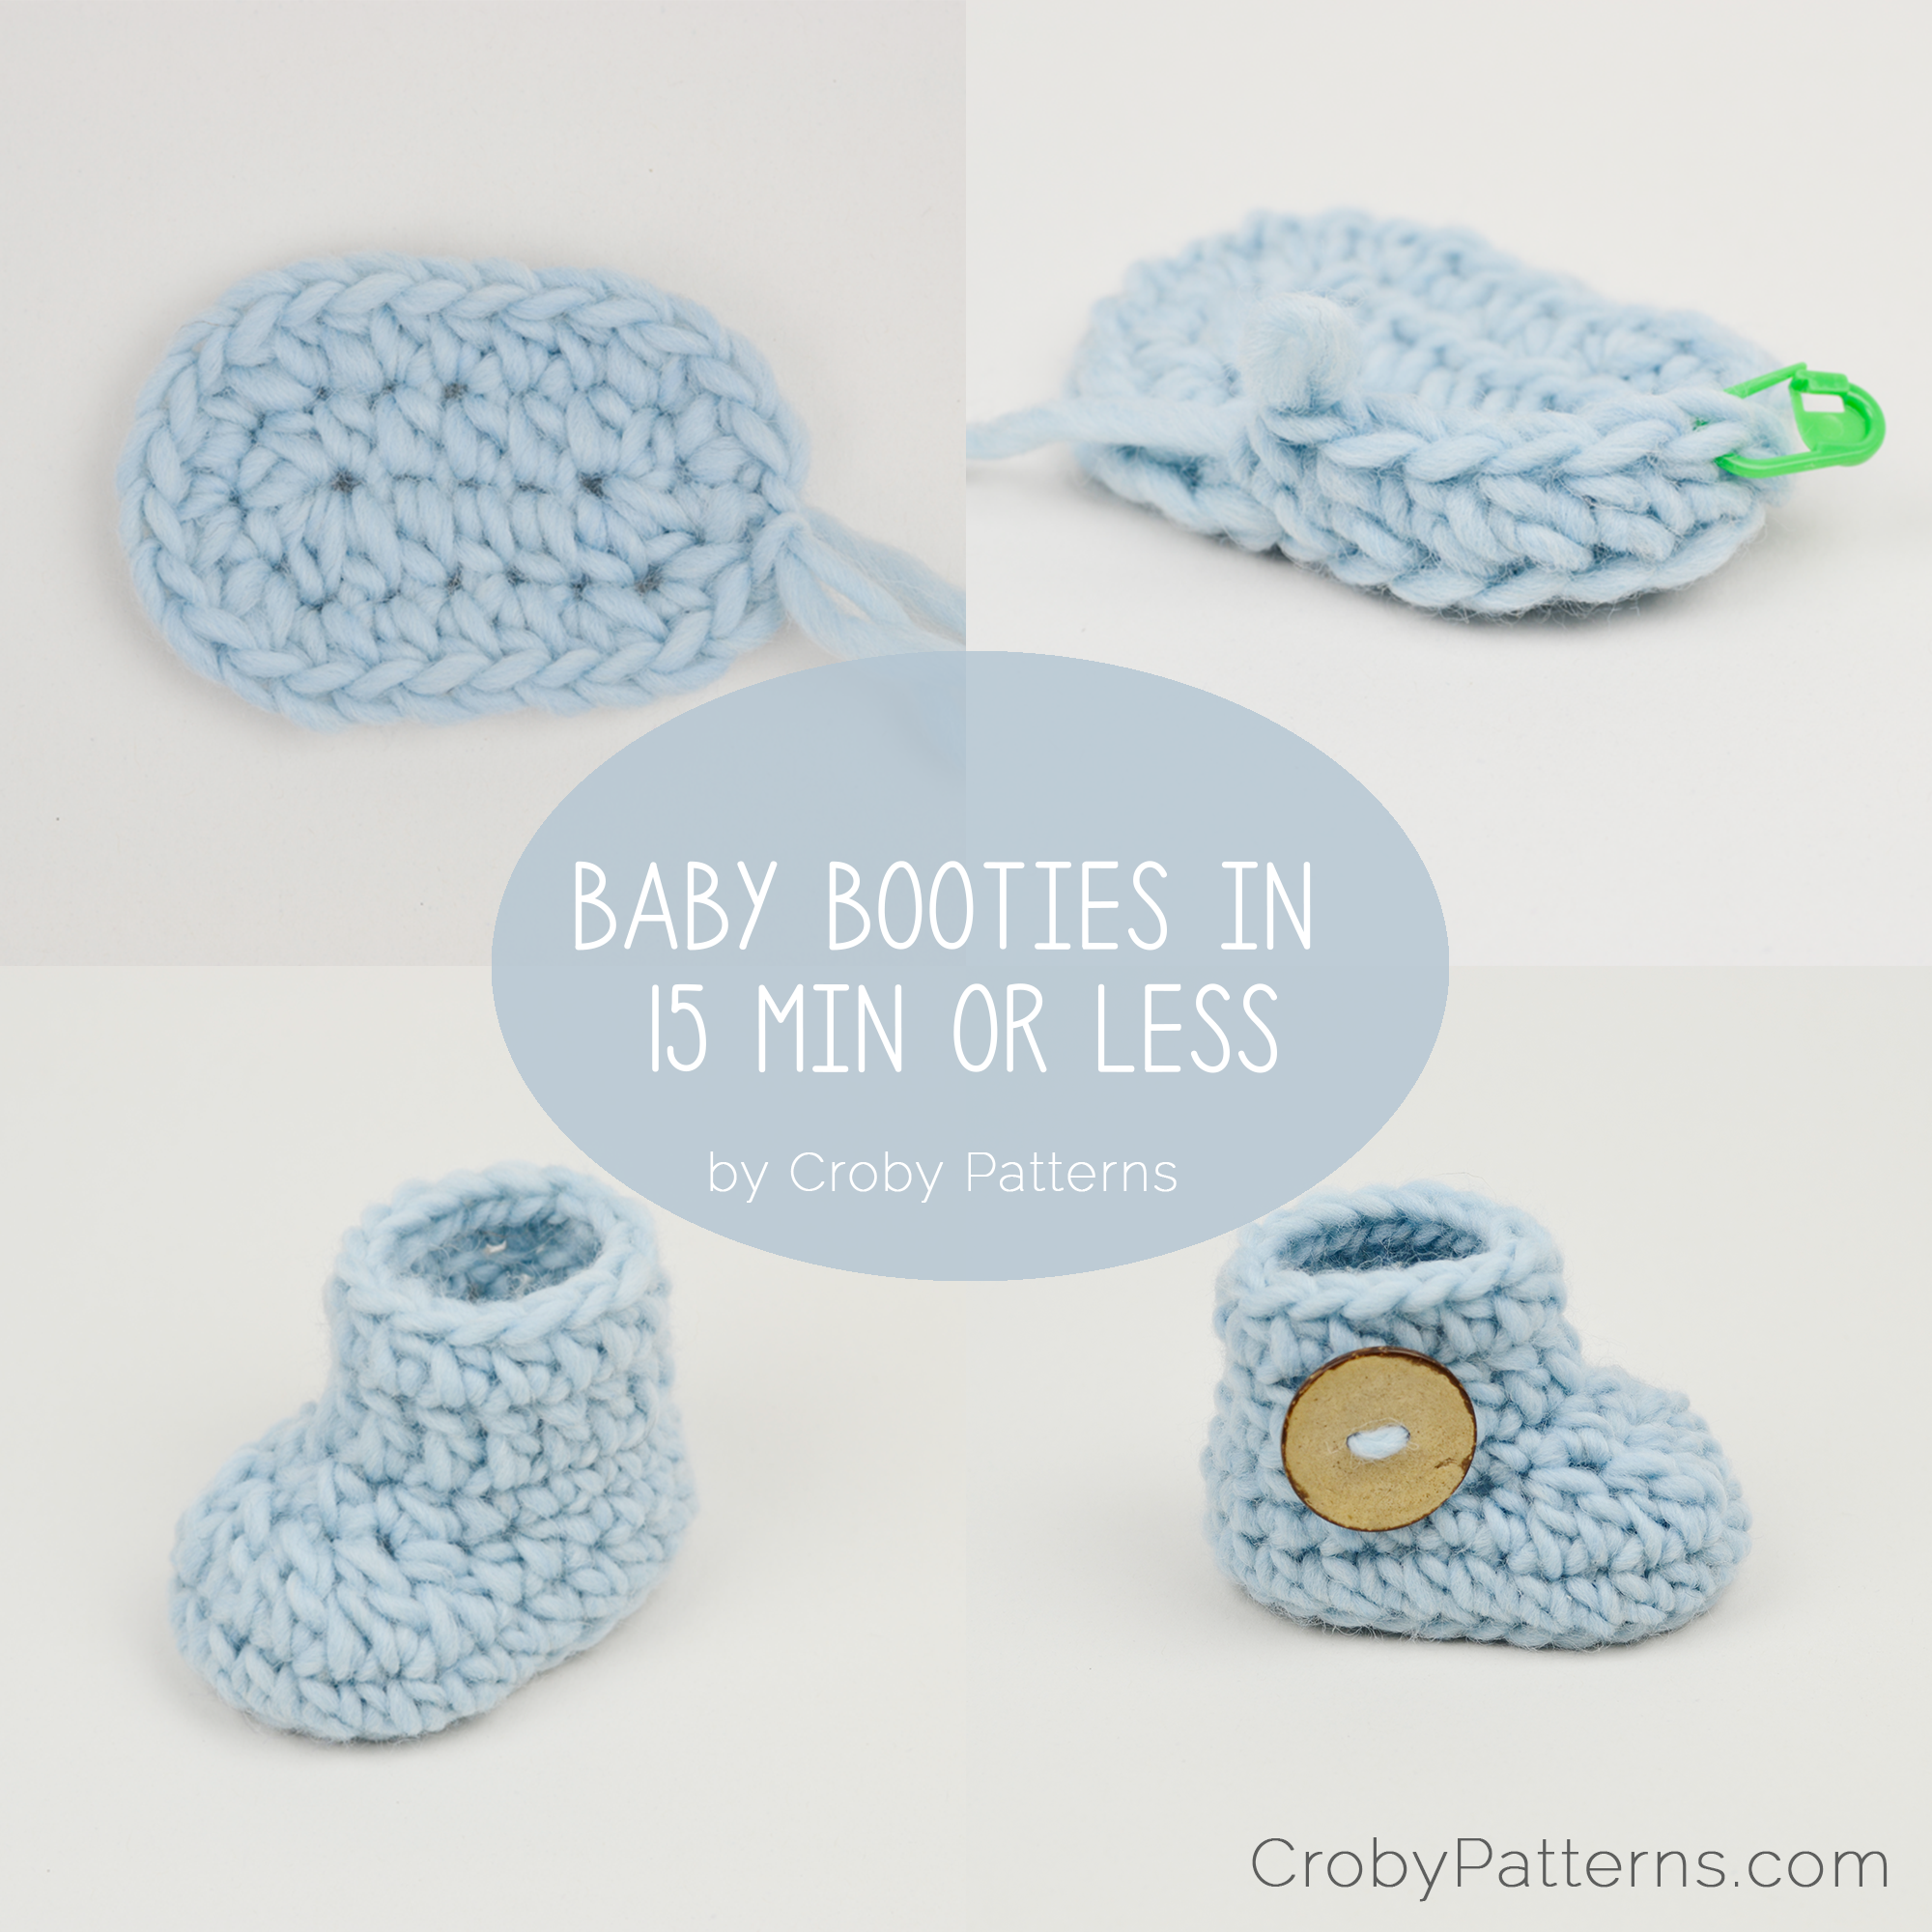 Crochet baby booties in 15 minutes or less! by Croby Patterns | The ...